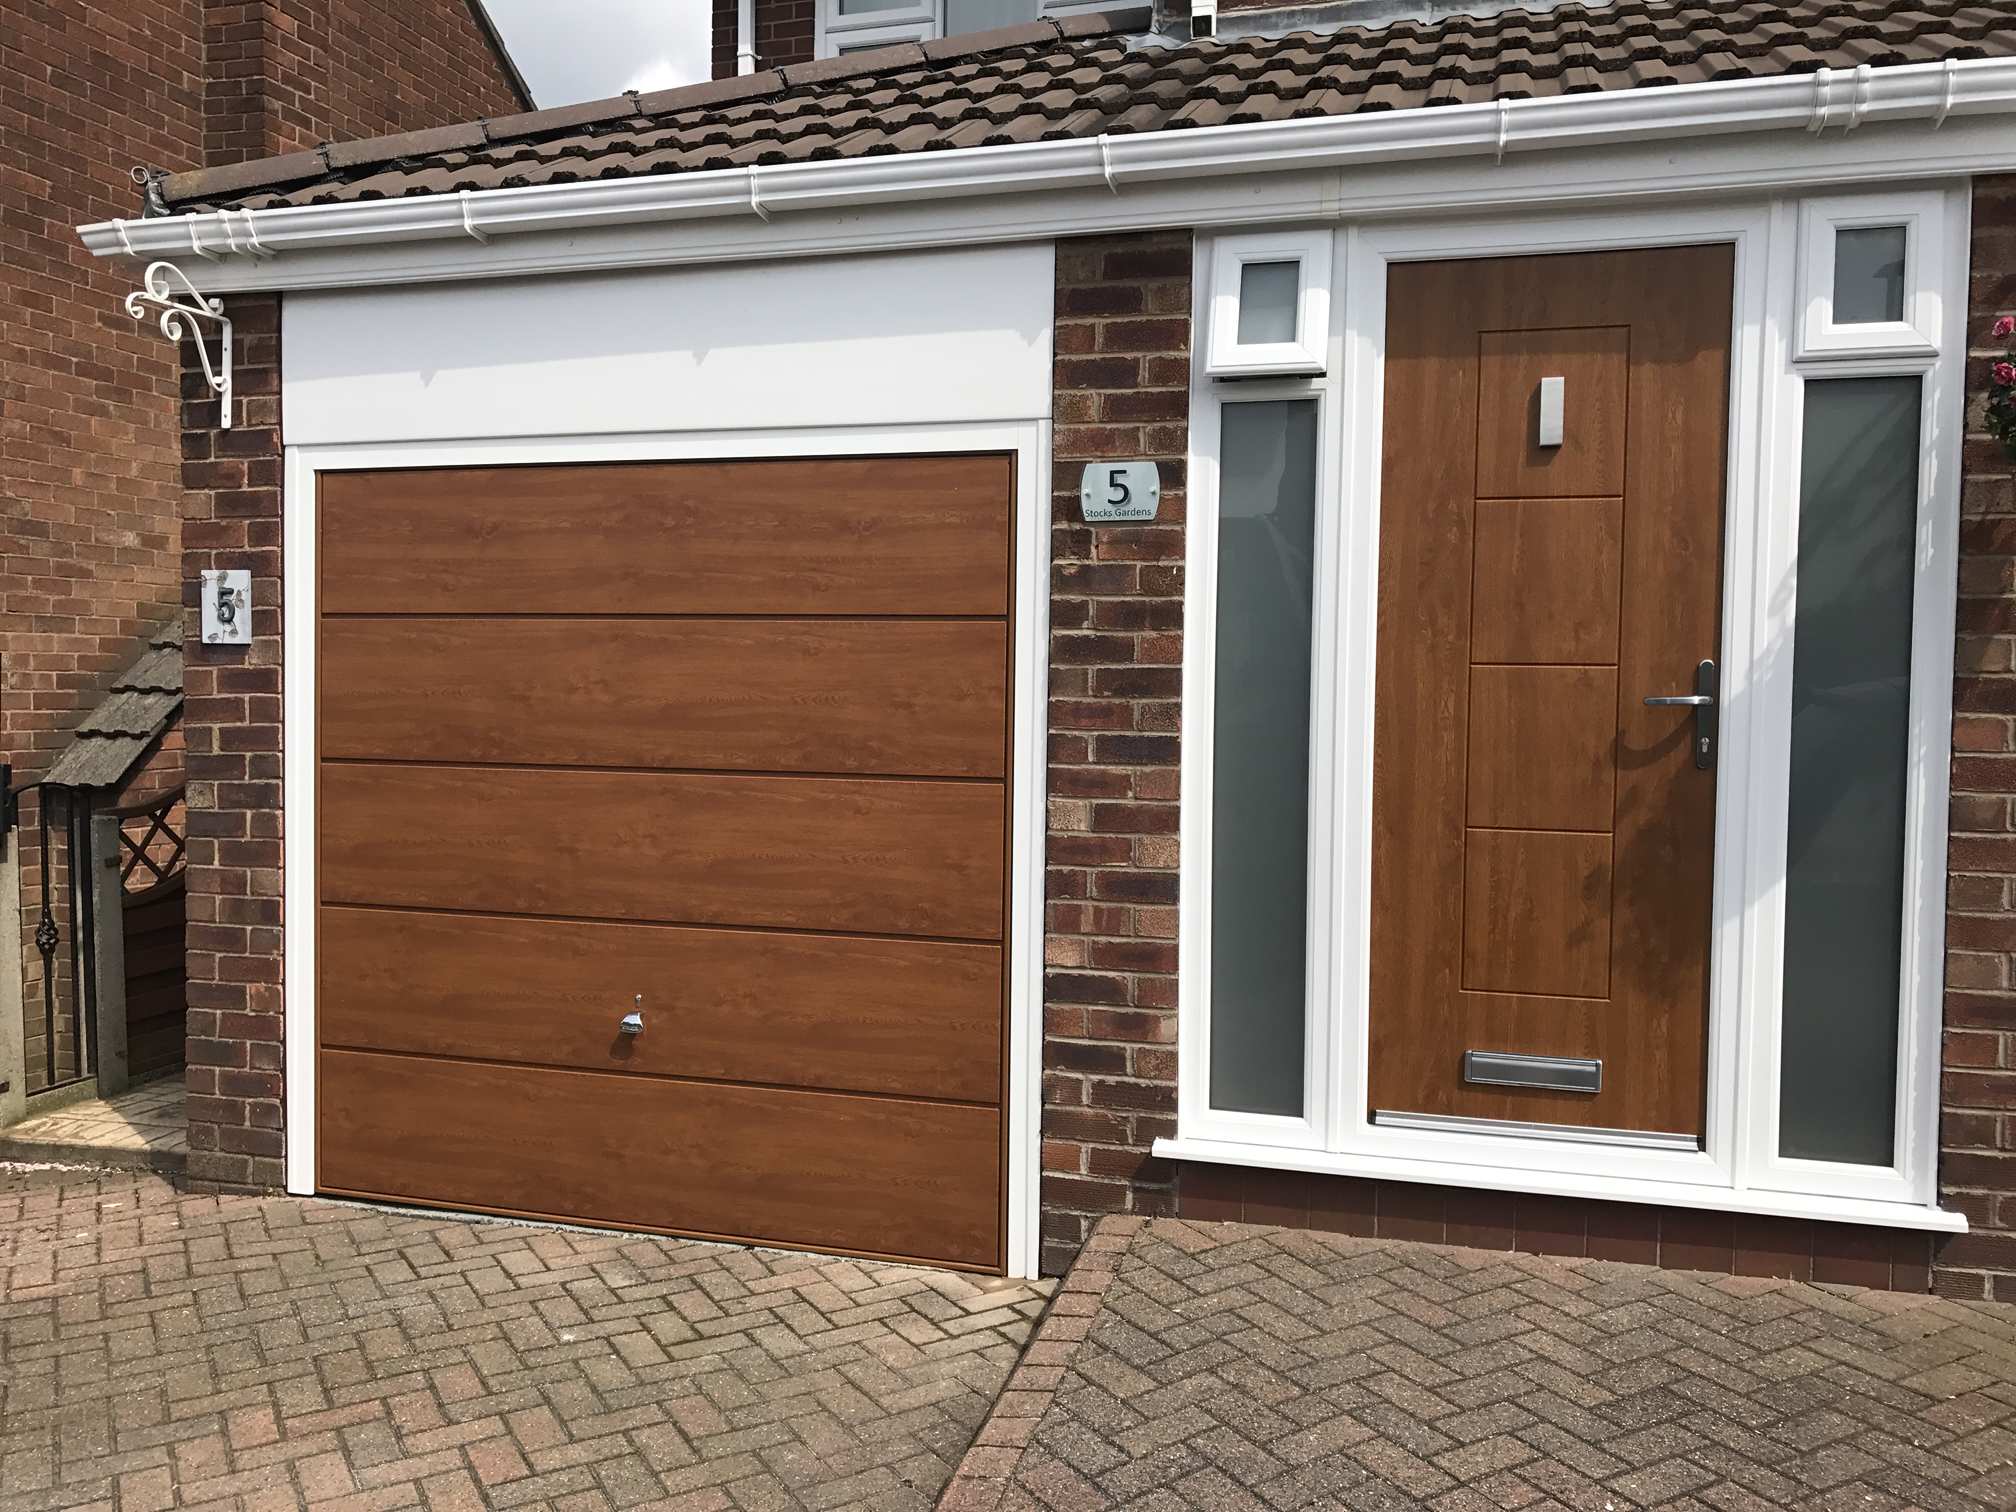 Doors To Garage: Hormann Garage Door, Stalybridge